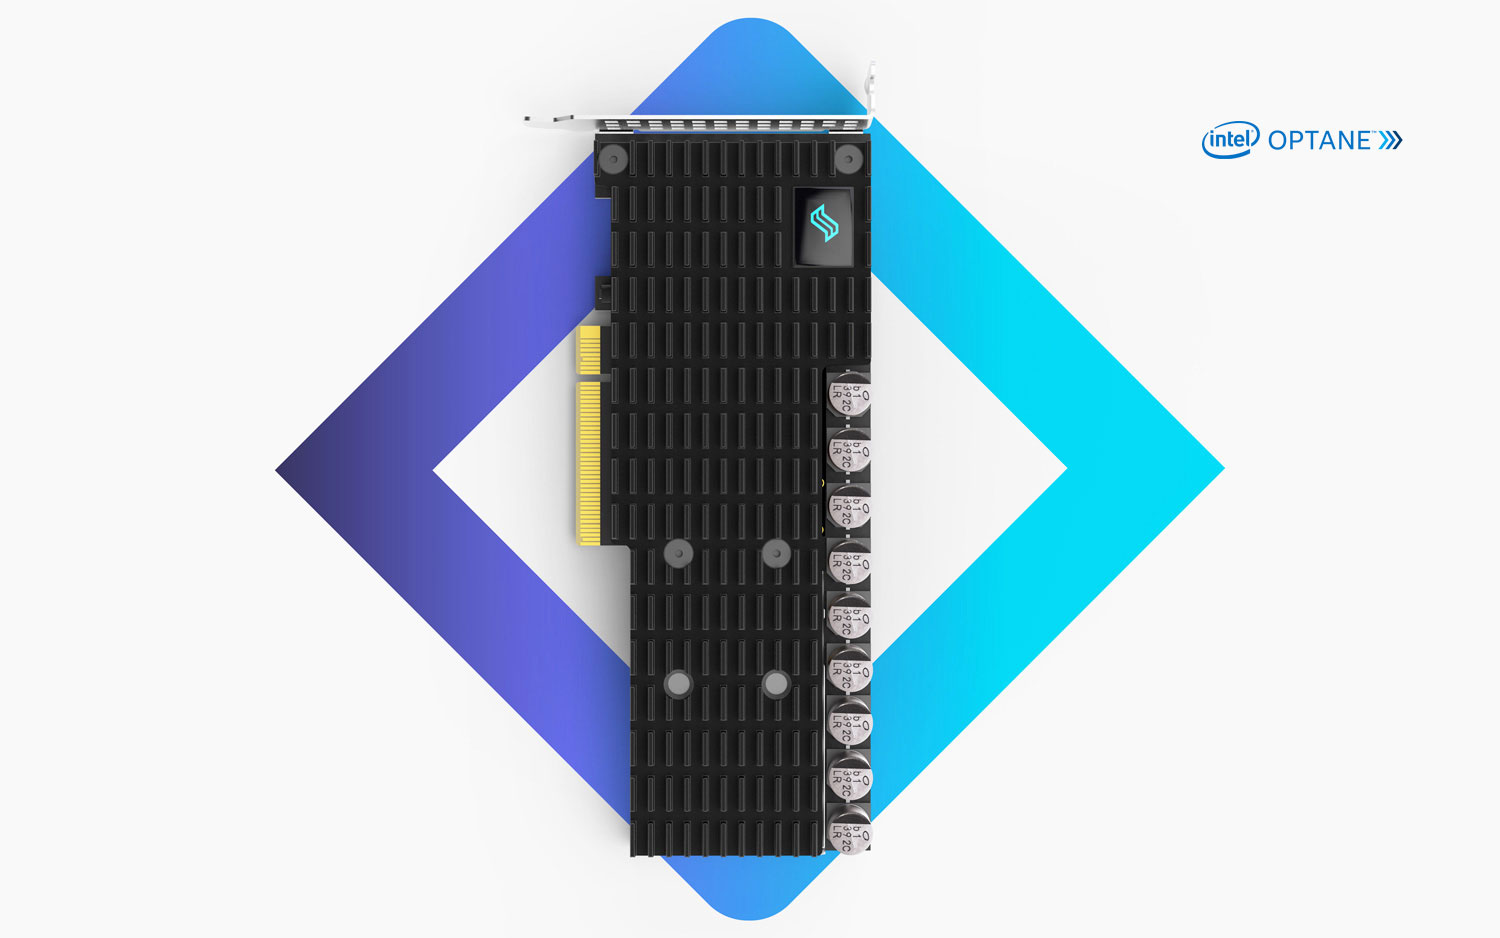 Liqid Element LQD3900 Intel Optane SSD high performance PCIe composable storage